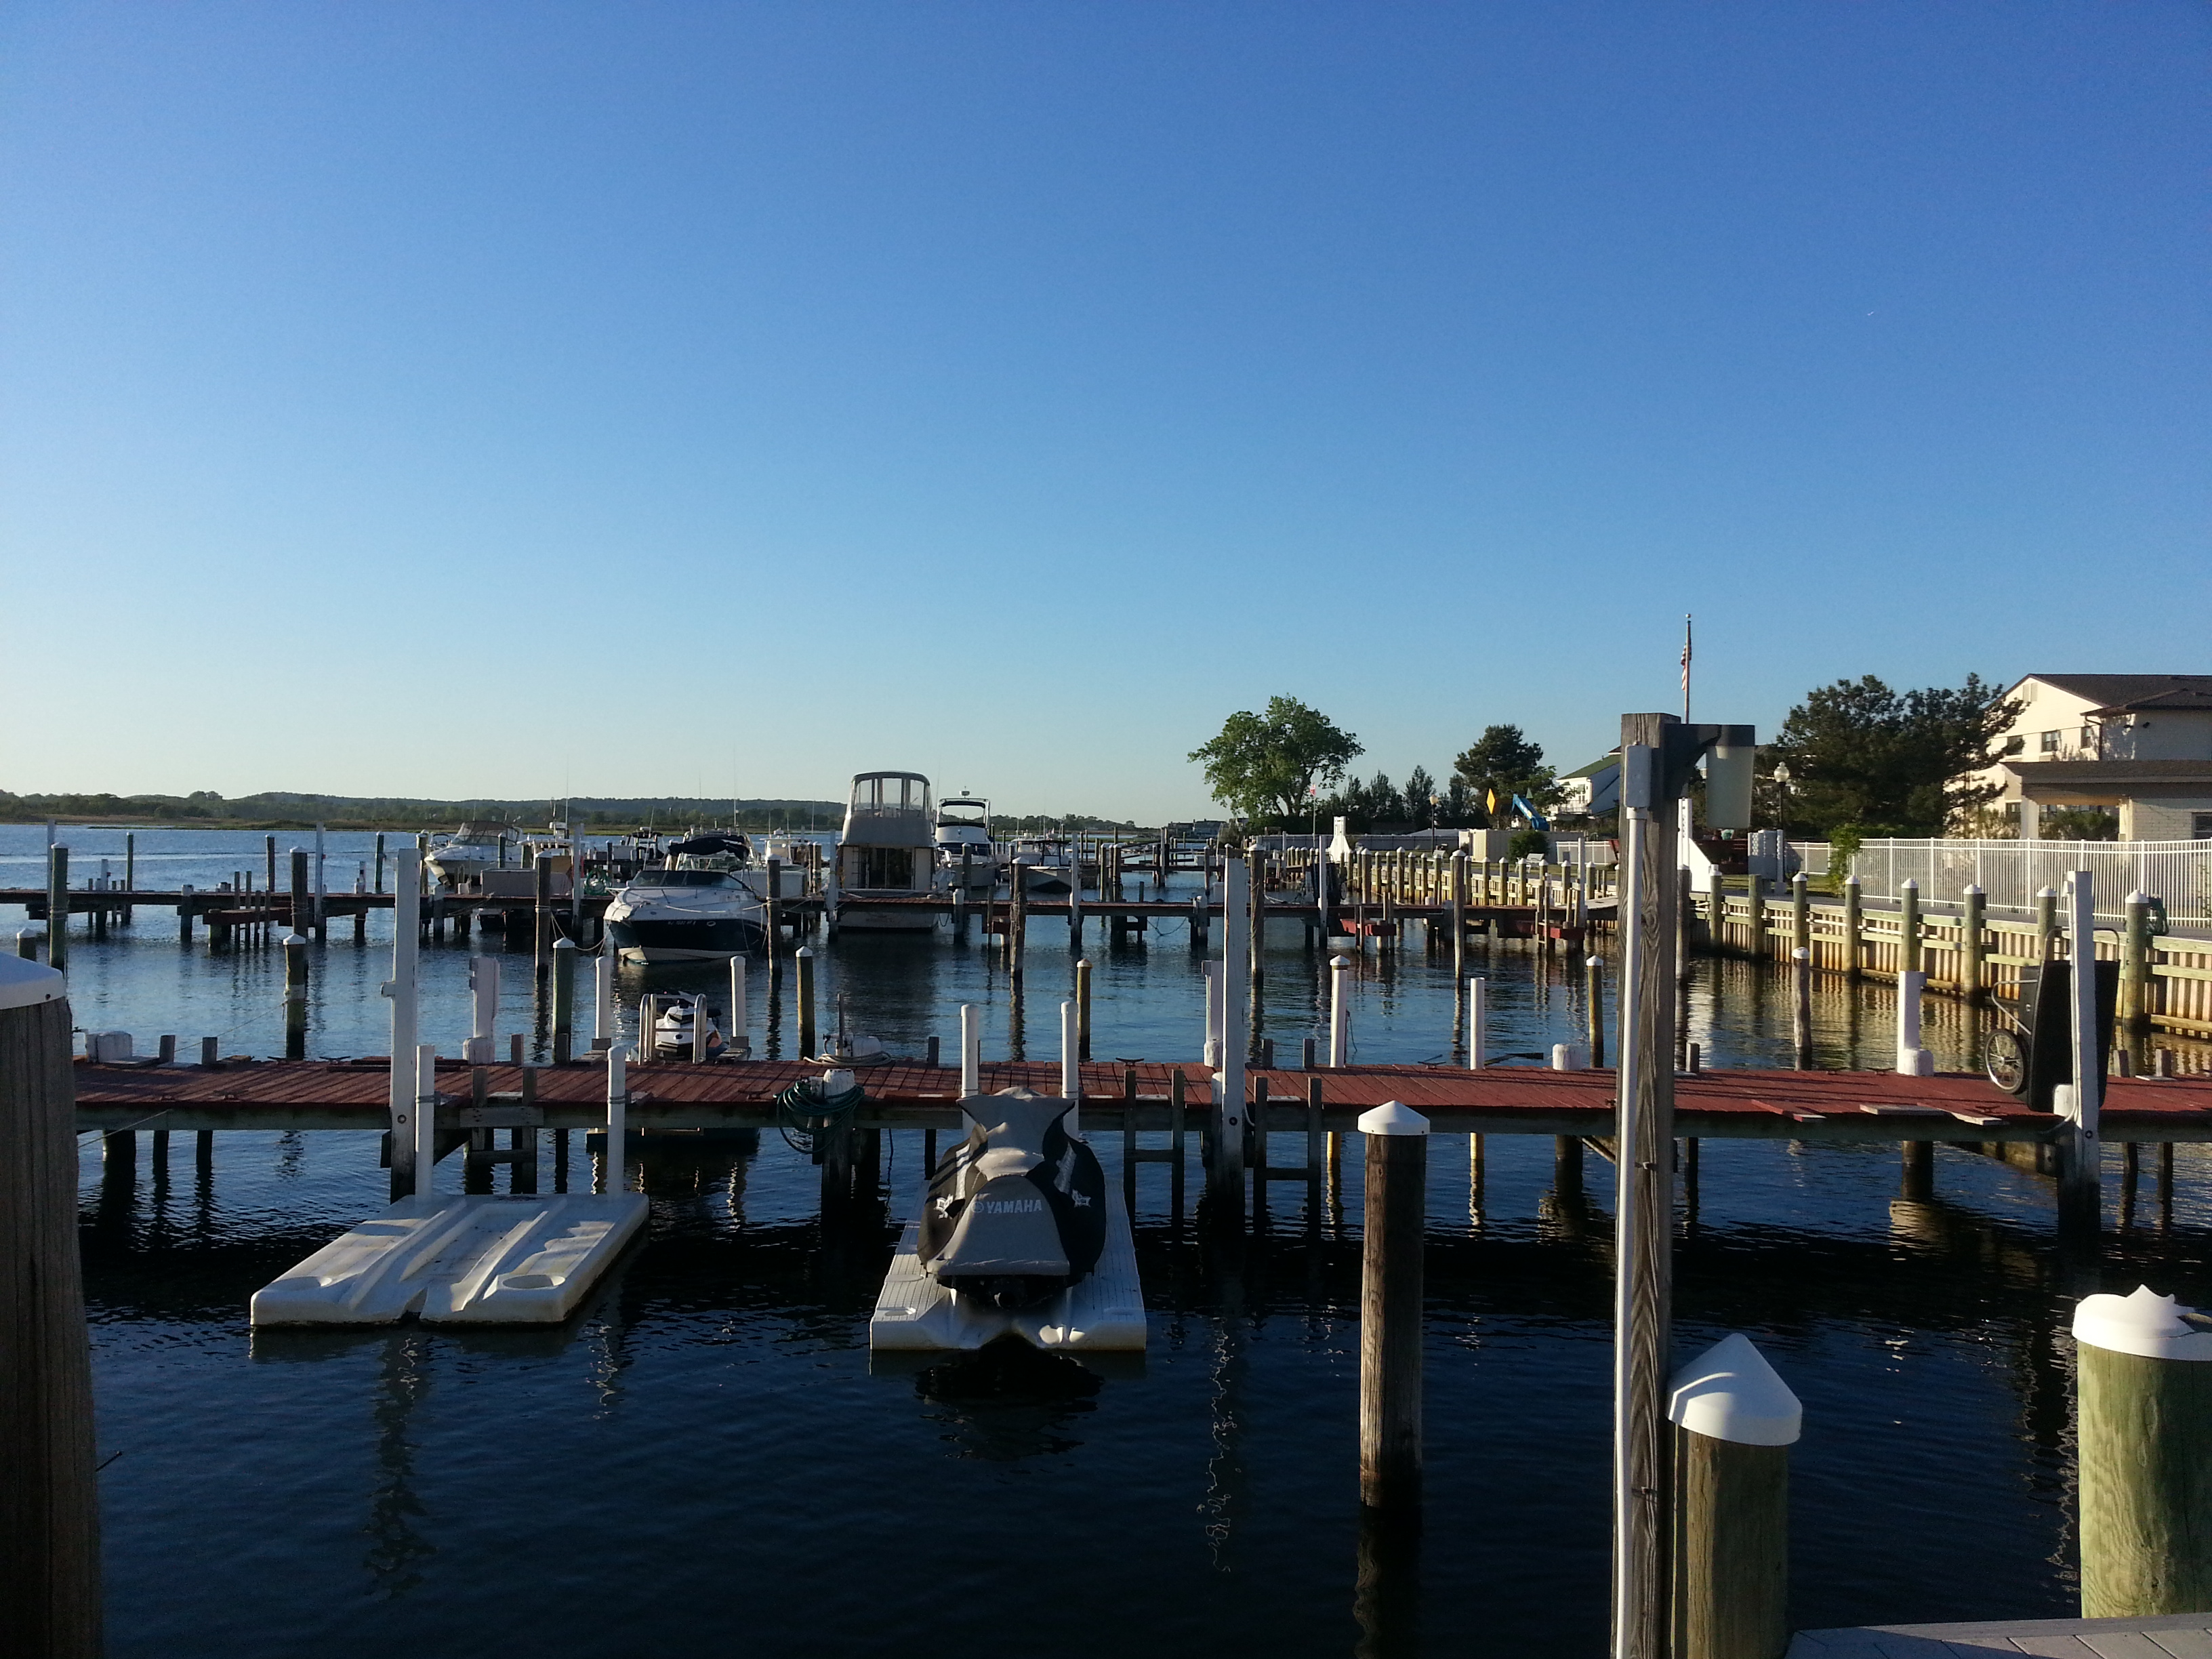 Behind Wharfside Manor is the Wharfside Marina, making it a popular place for boaters.